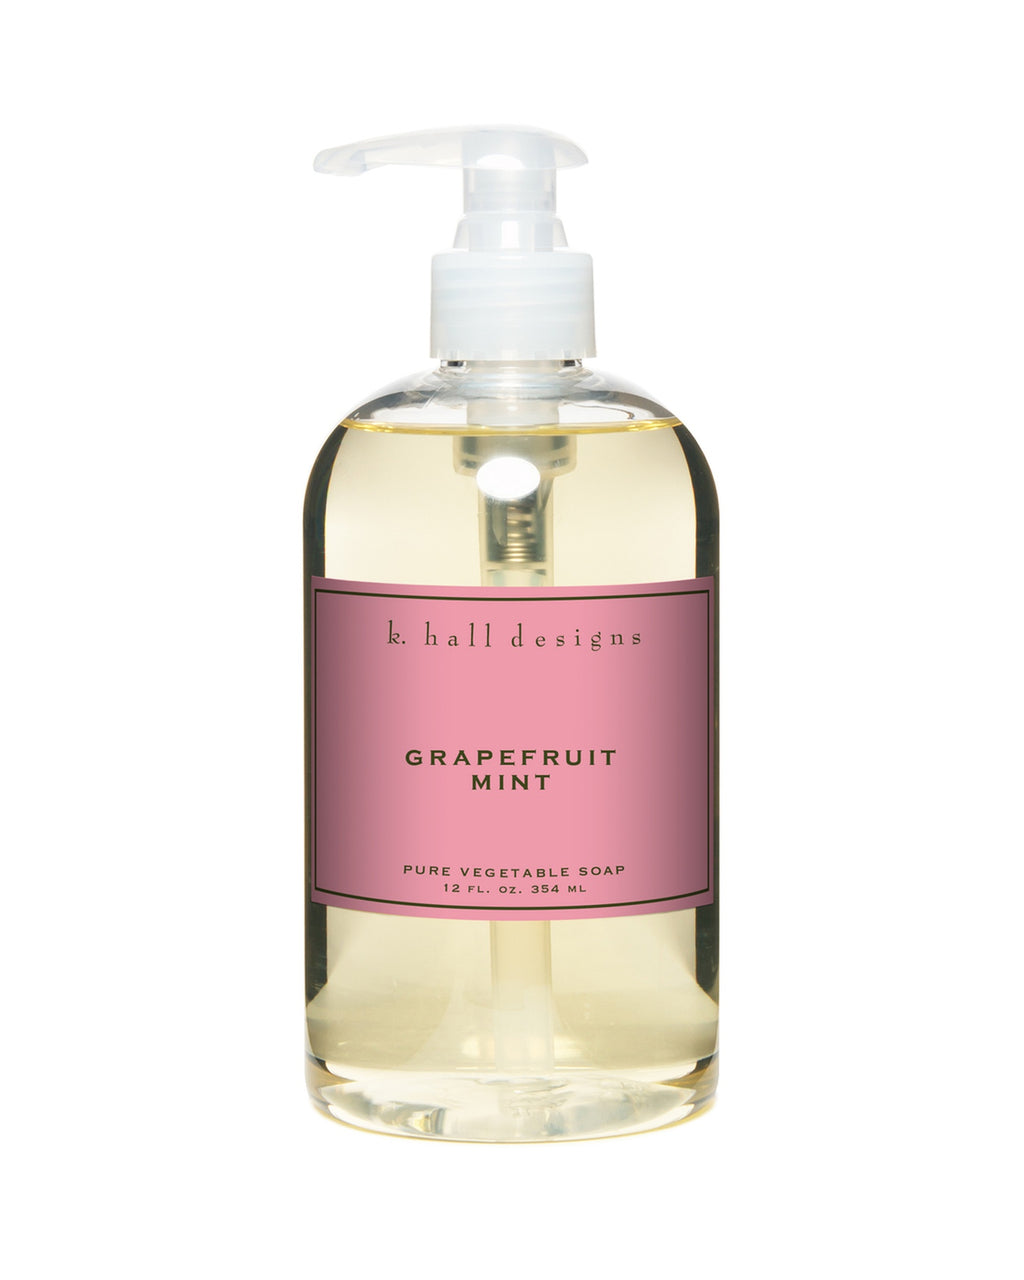 Grapefruit Mint Hand Soap 12oz